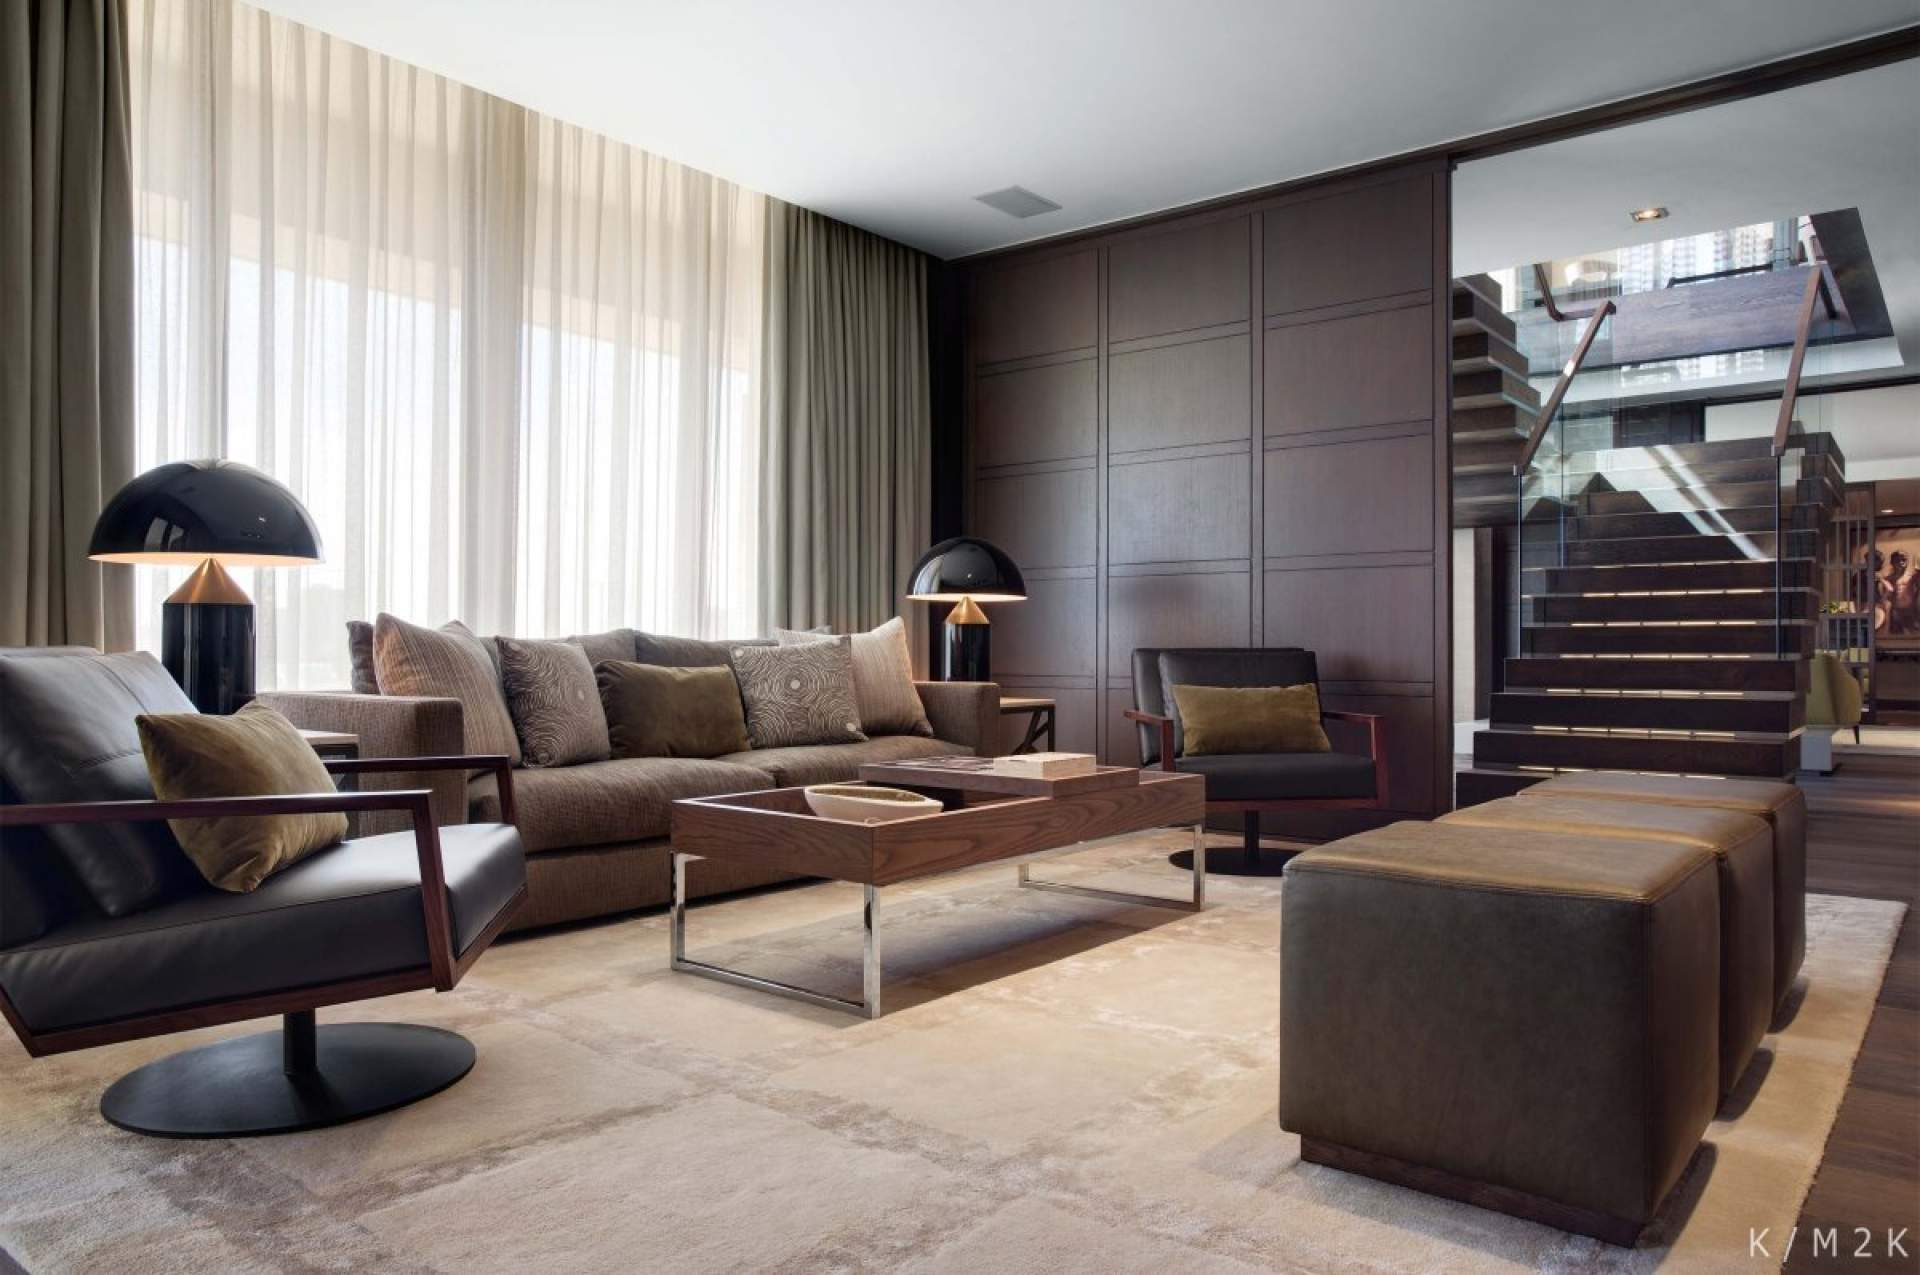 Elegant Brown Minimalist Penthouse Design (View 6 of 10)